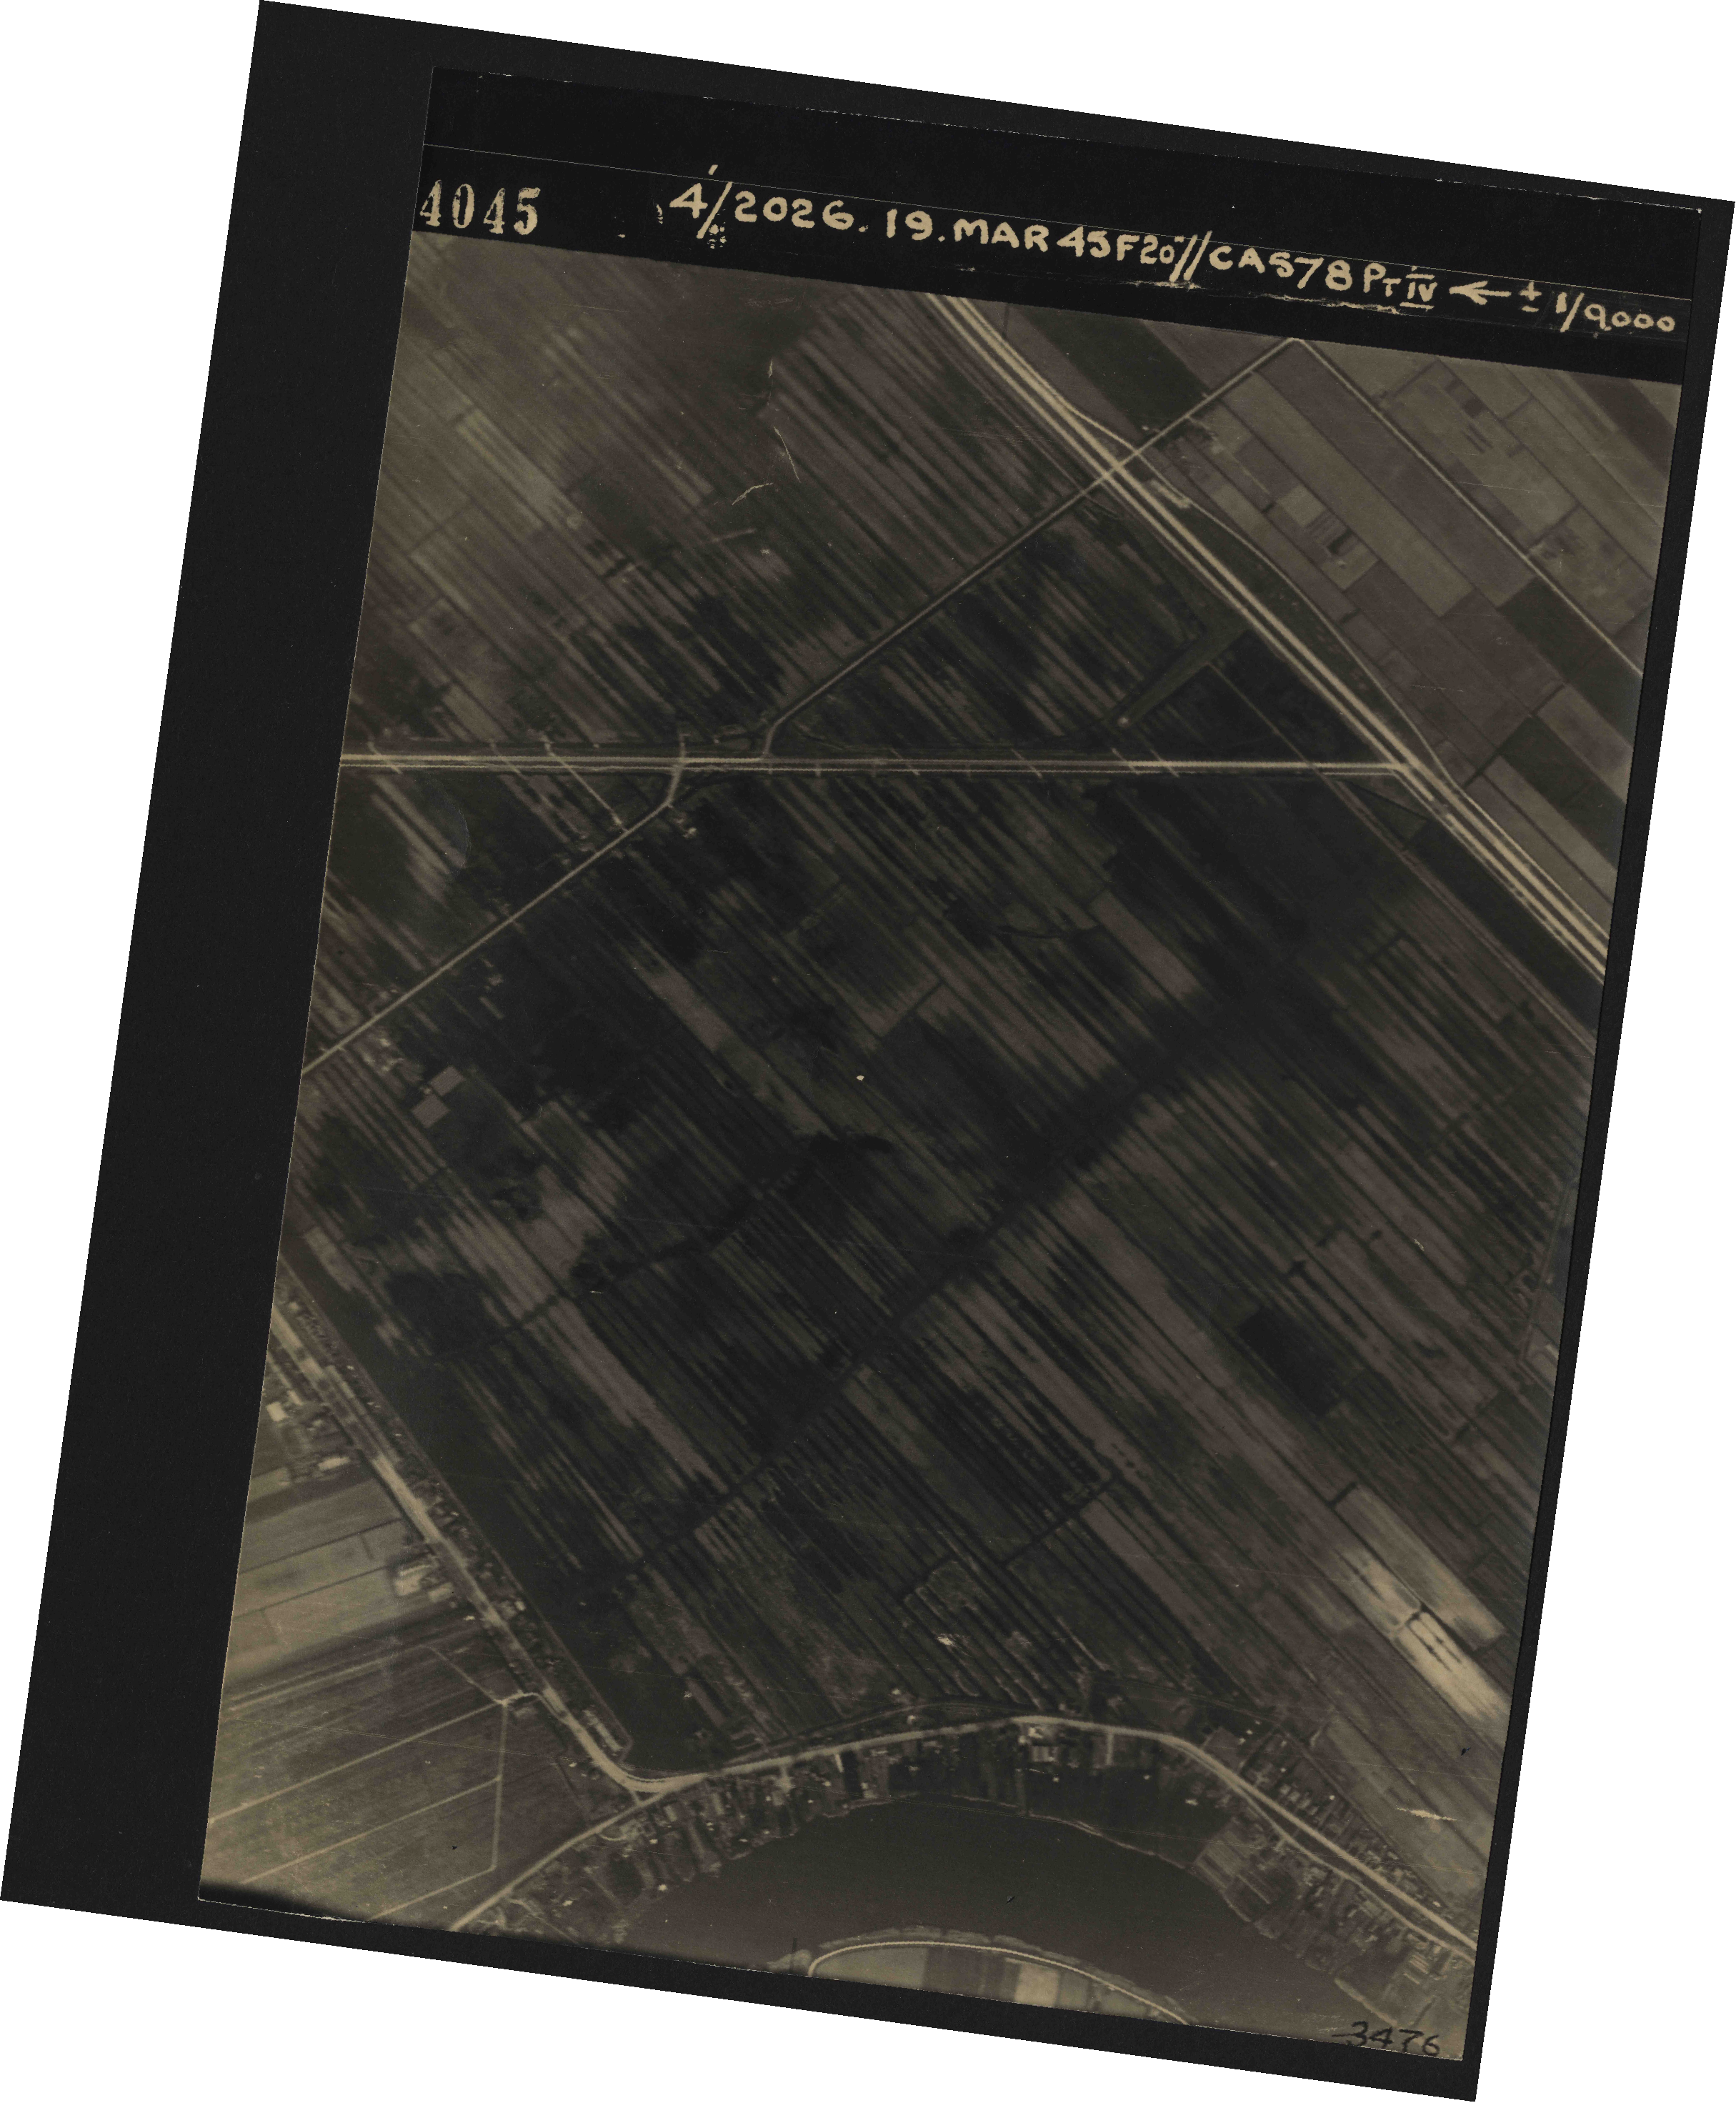 Collection RAF aerial photos 1940-1945 - flight 012, run 02, photo 4045